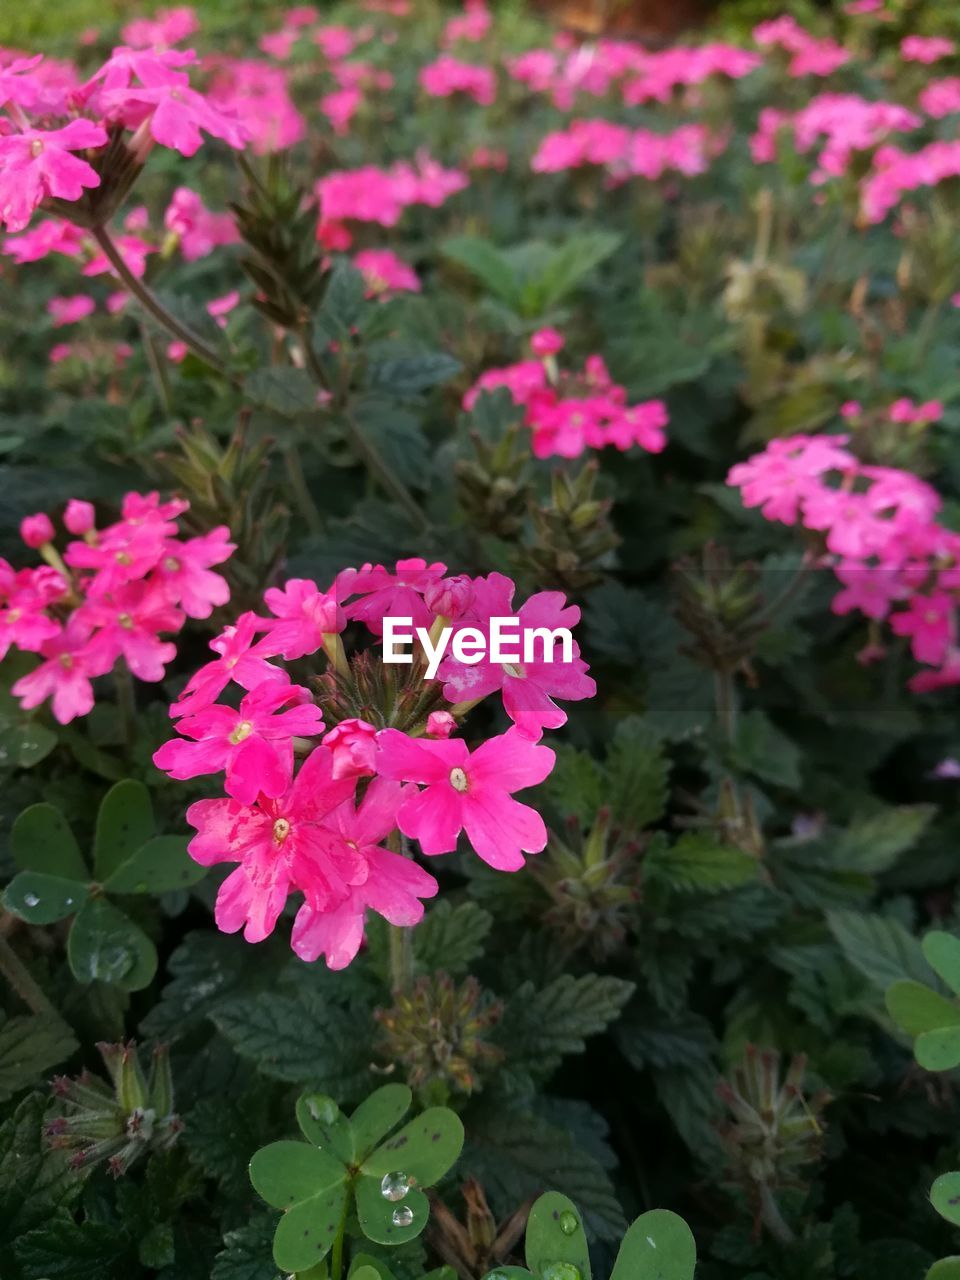 plant, growth, flower, beauty in nature, nature, petal, pink color, fragility, freshness, leaf, outdoors, flower head, no people, day, blooming, focus on foreground, close-up, lantana camara